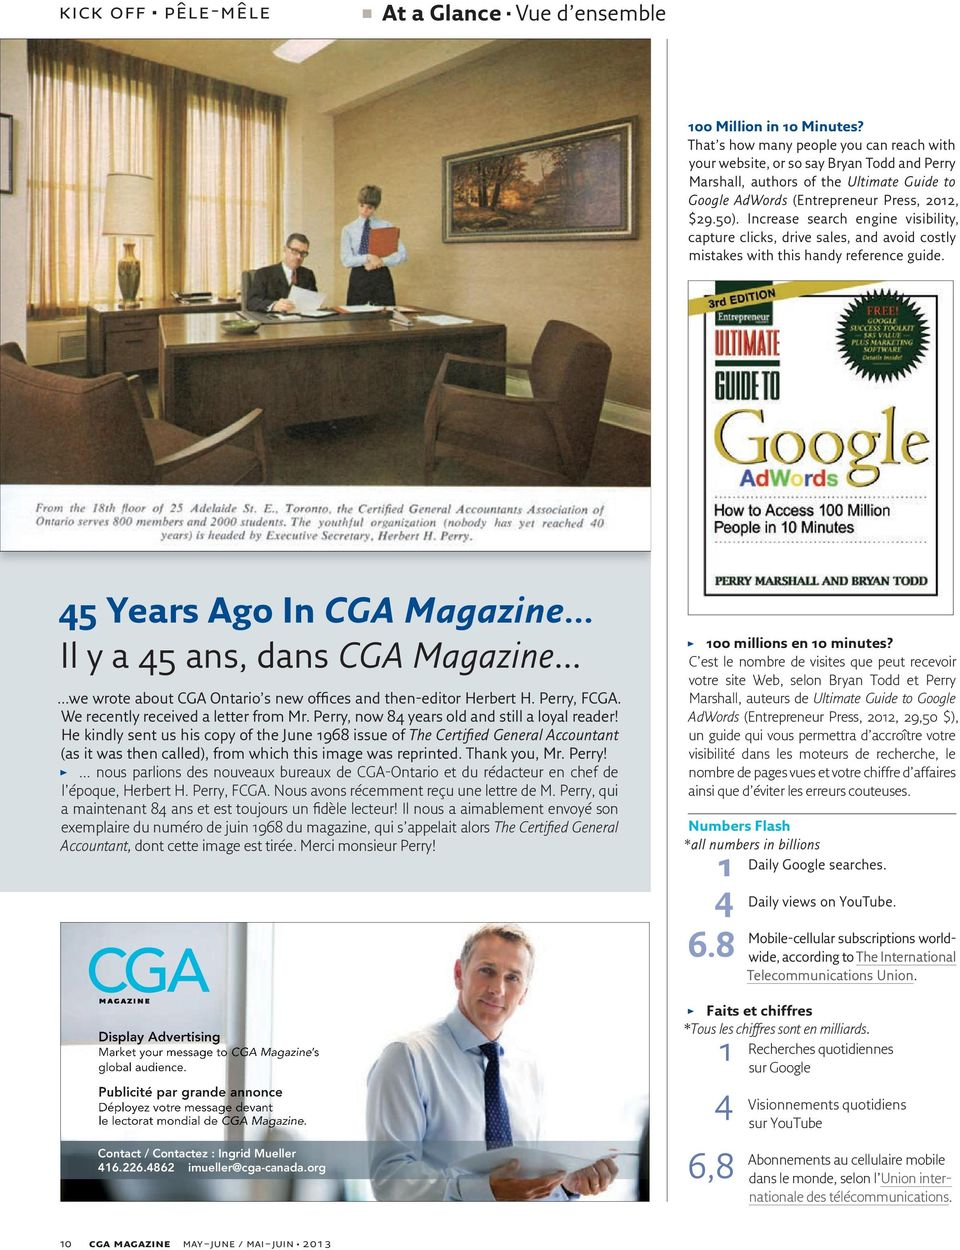 Increase search engine visibility, capture clicks, drive sales, and avoid costly mistakes with this handy reference guide. 45 Years Ago In CGA Magazine Il y a 45 ans, dans CGA Magazine.